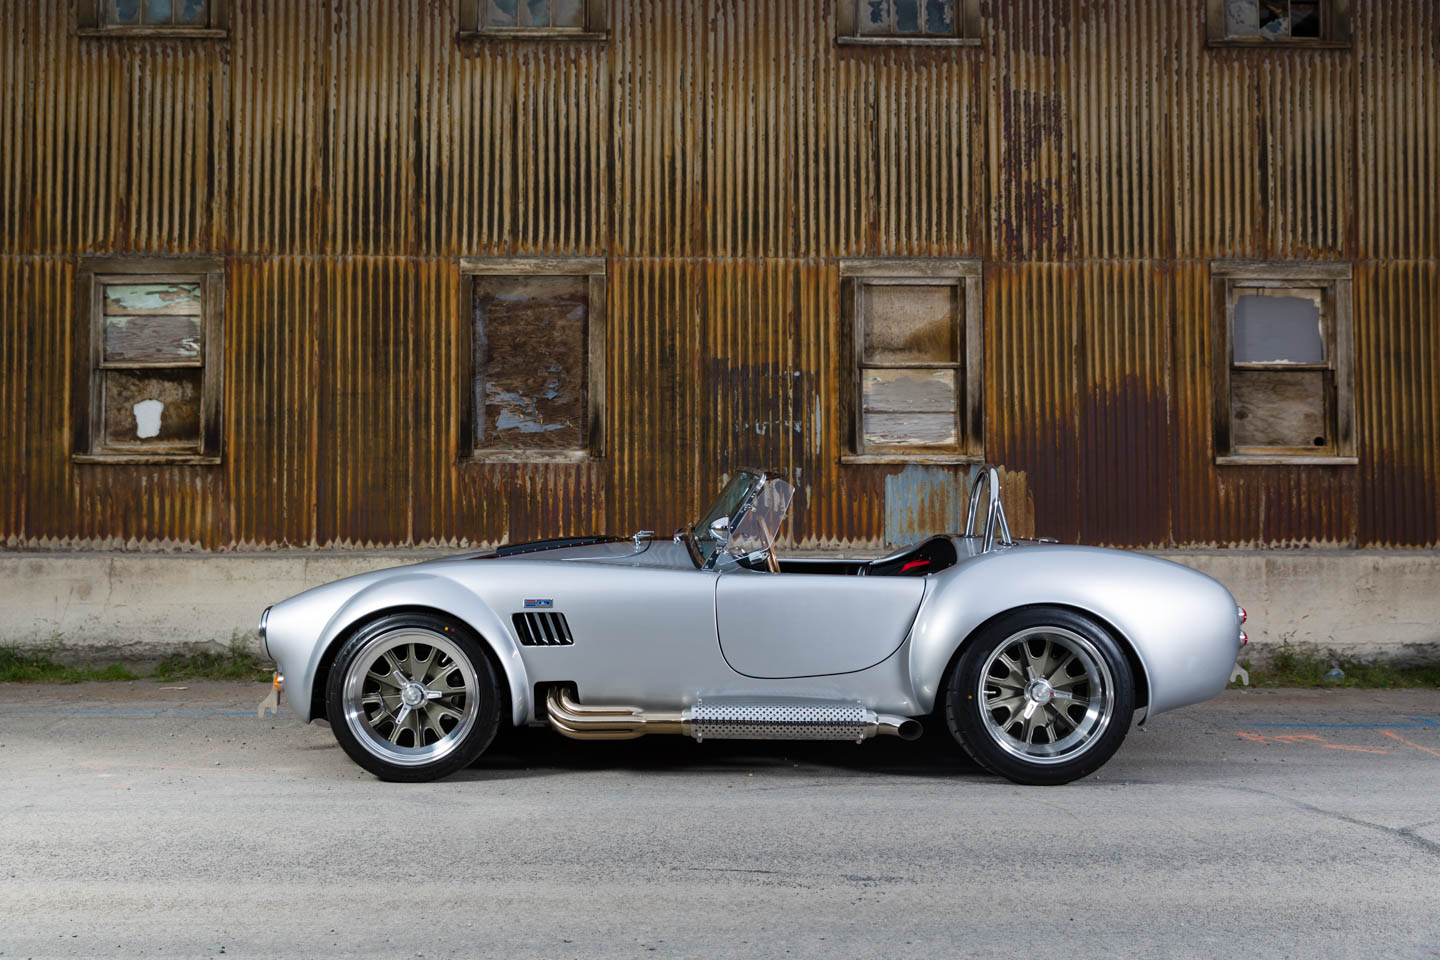 Side view of the silver Shelby Cobra